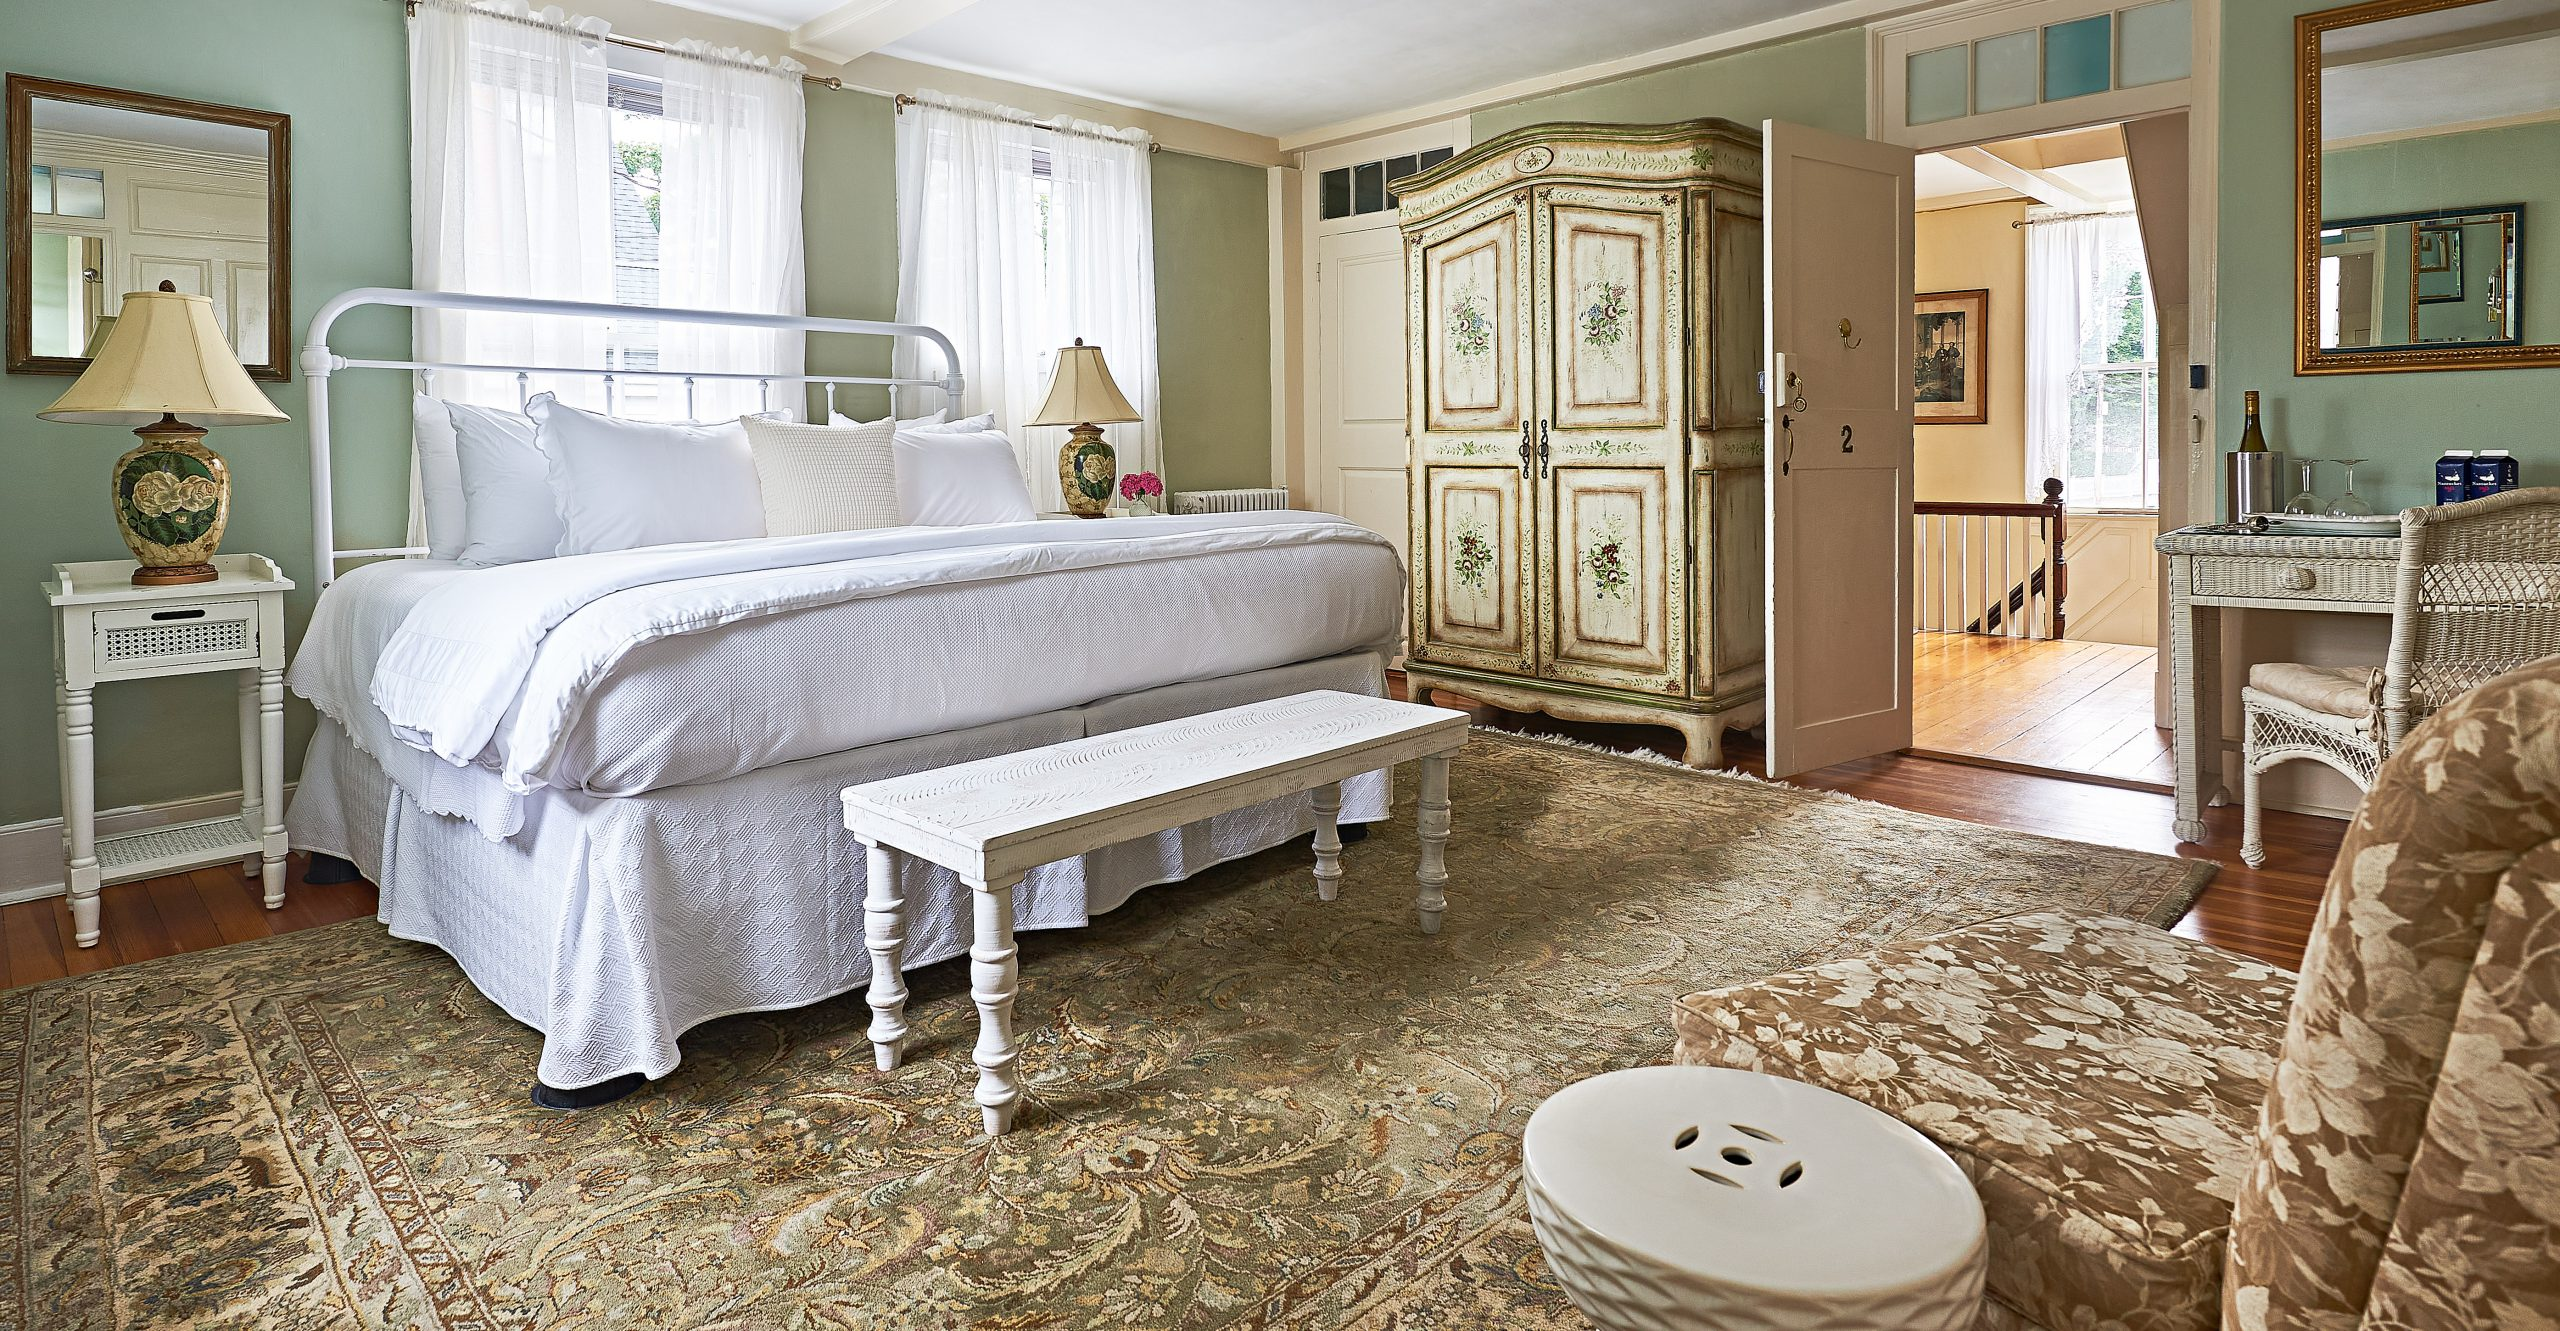 Large room with a bed and a wardrobe